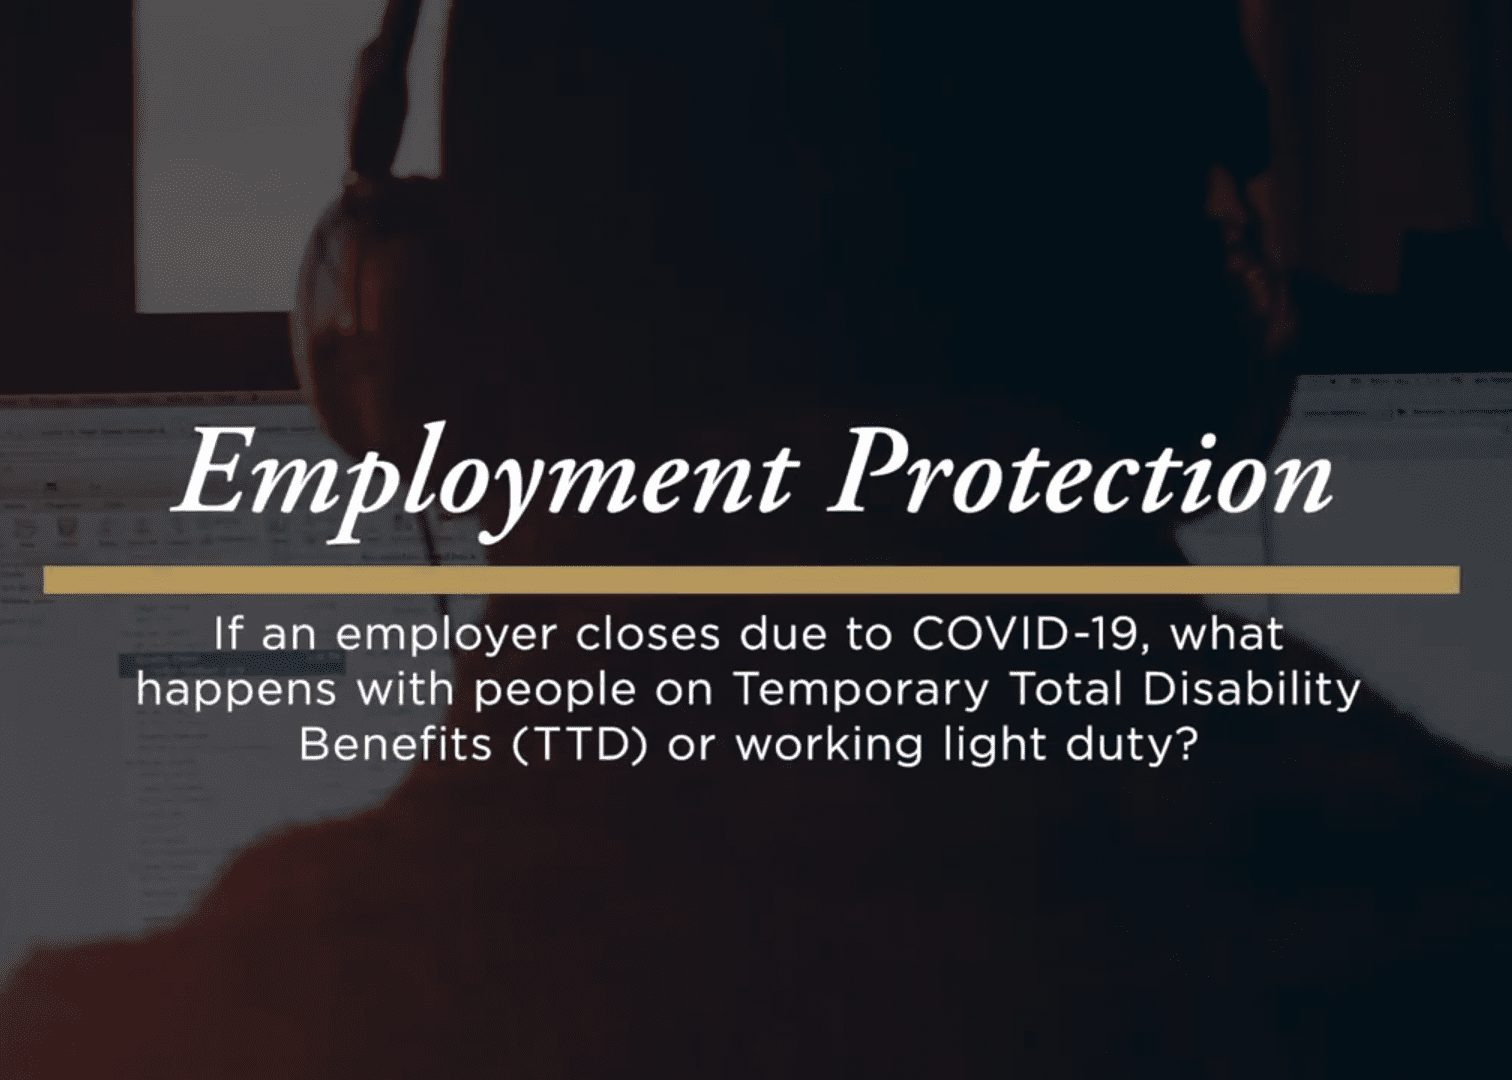 What happens with employees under workers' compensation if an employer is closed due to COVID-19?